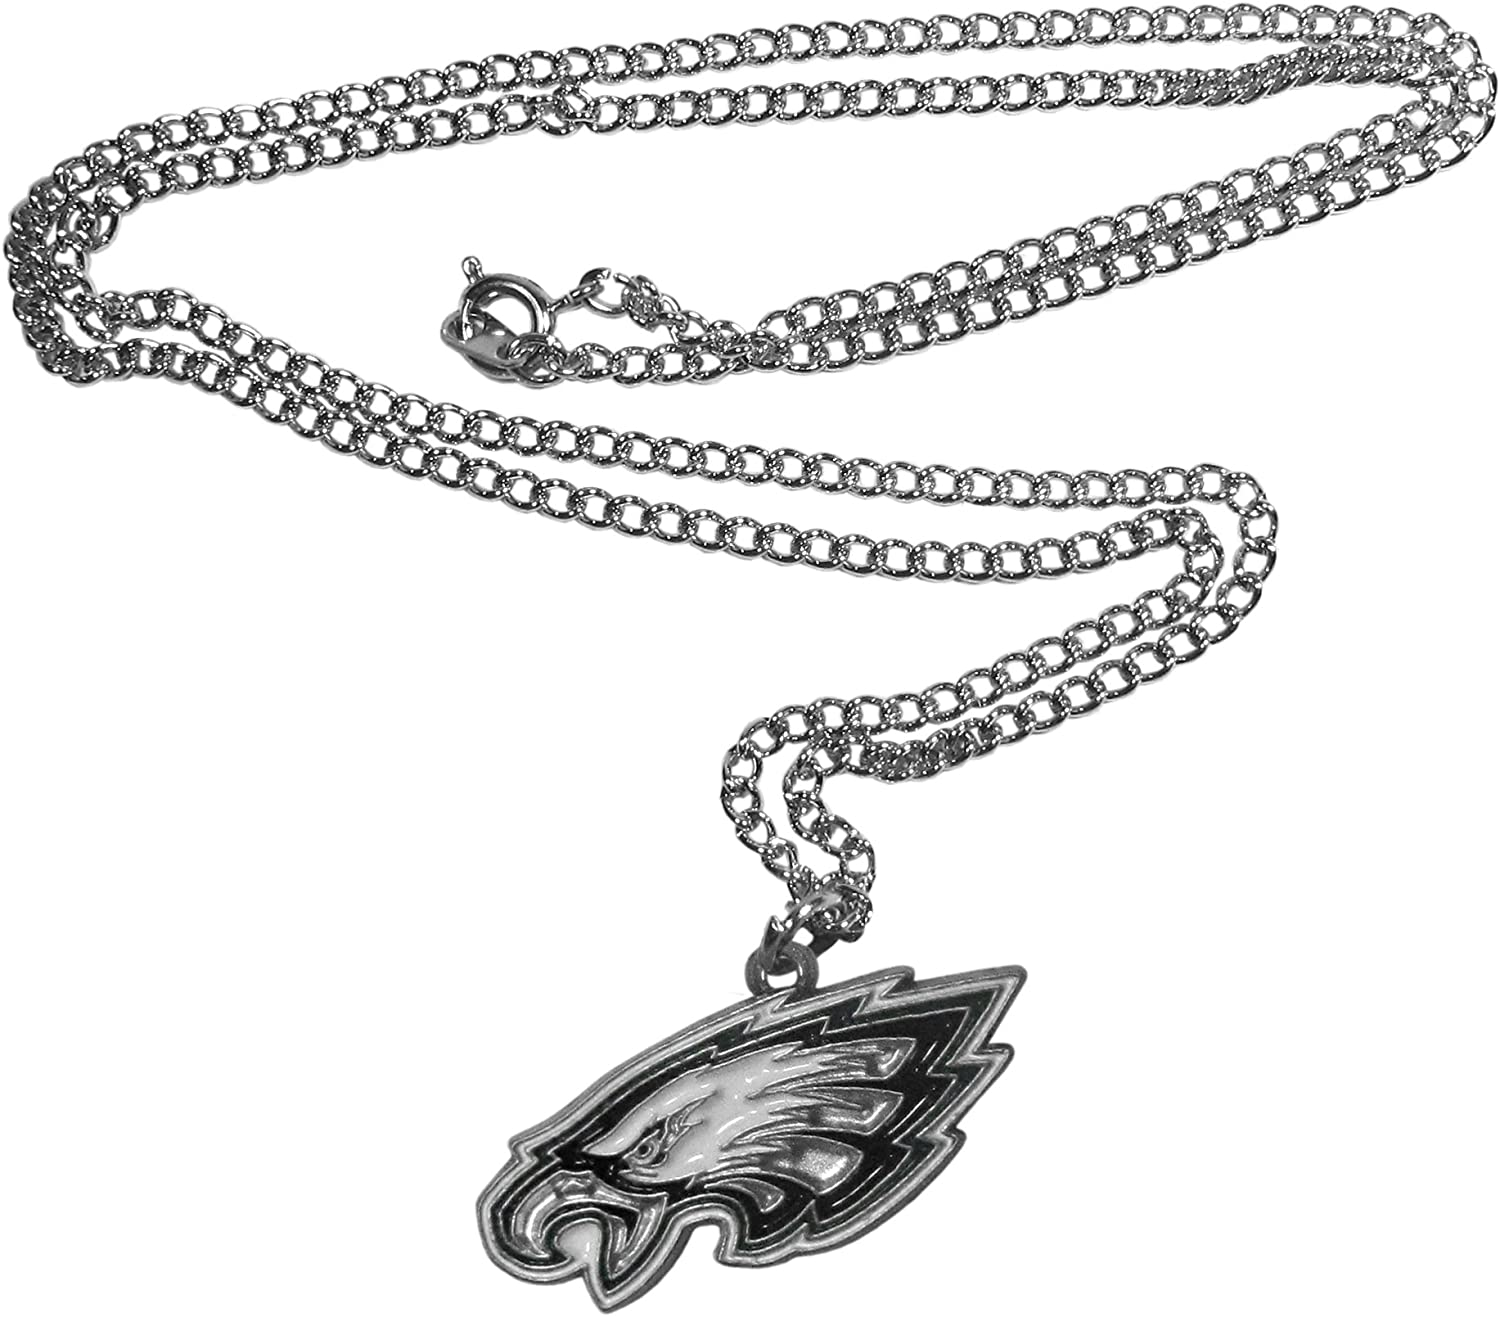 Siskiyou 4 years warranty Sports Large special price NFL Chain Necklace boys